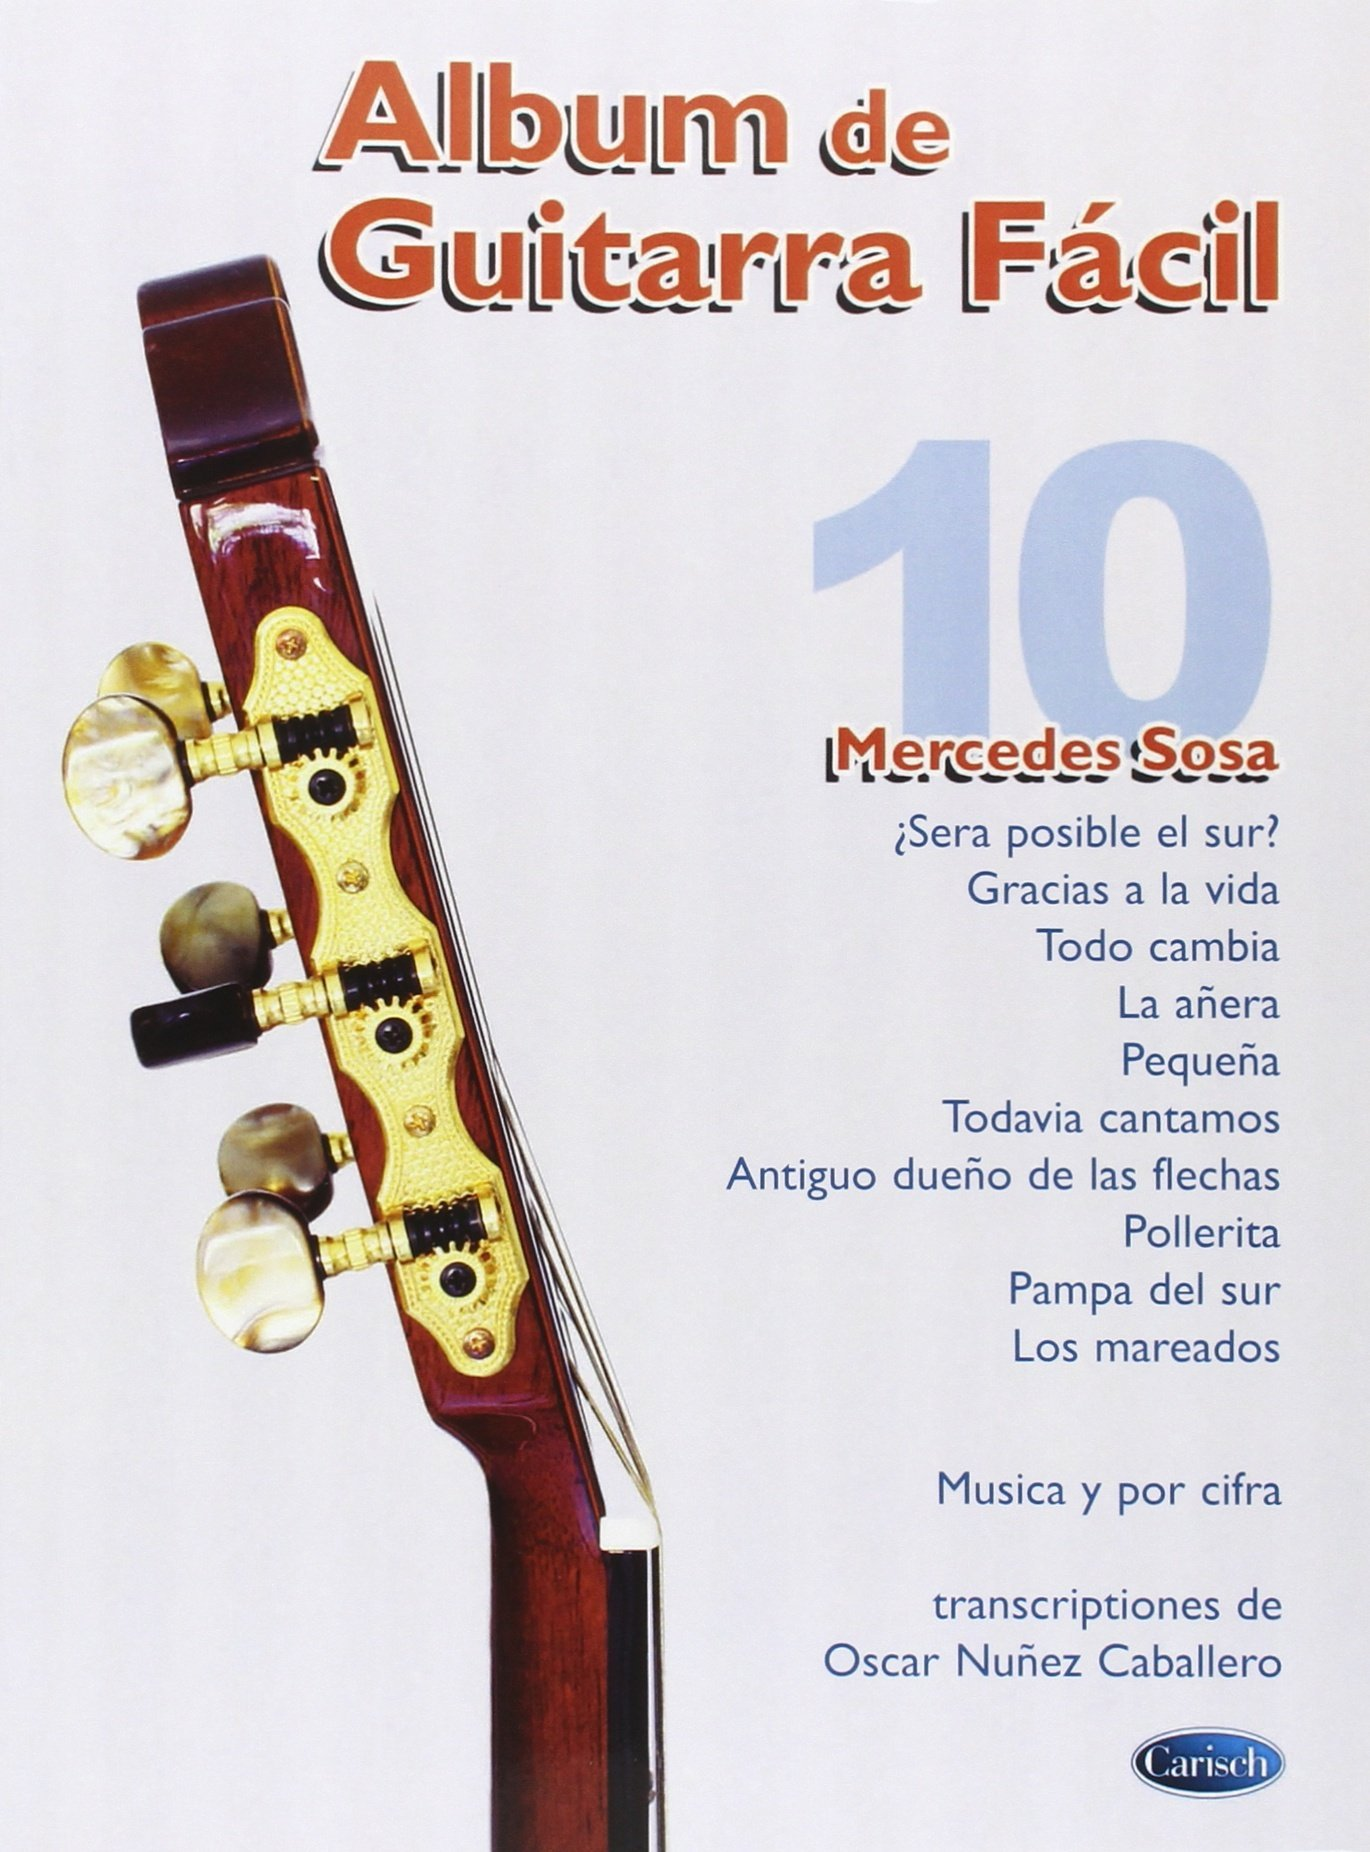 Album de Guitarra Fácil N.10 - Mercedes Sosa: Amazon.es: Aa.Vv ...